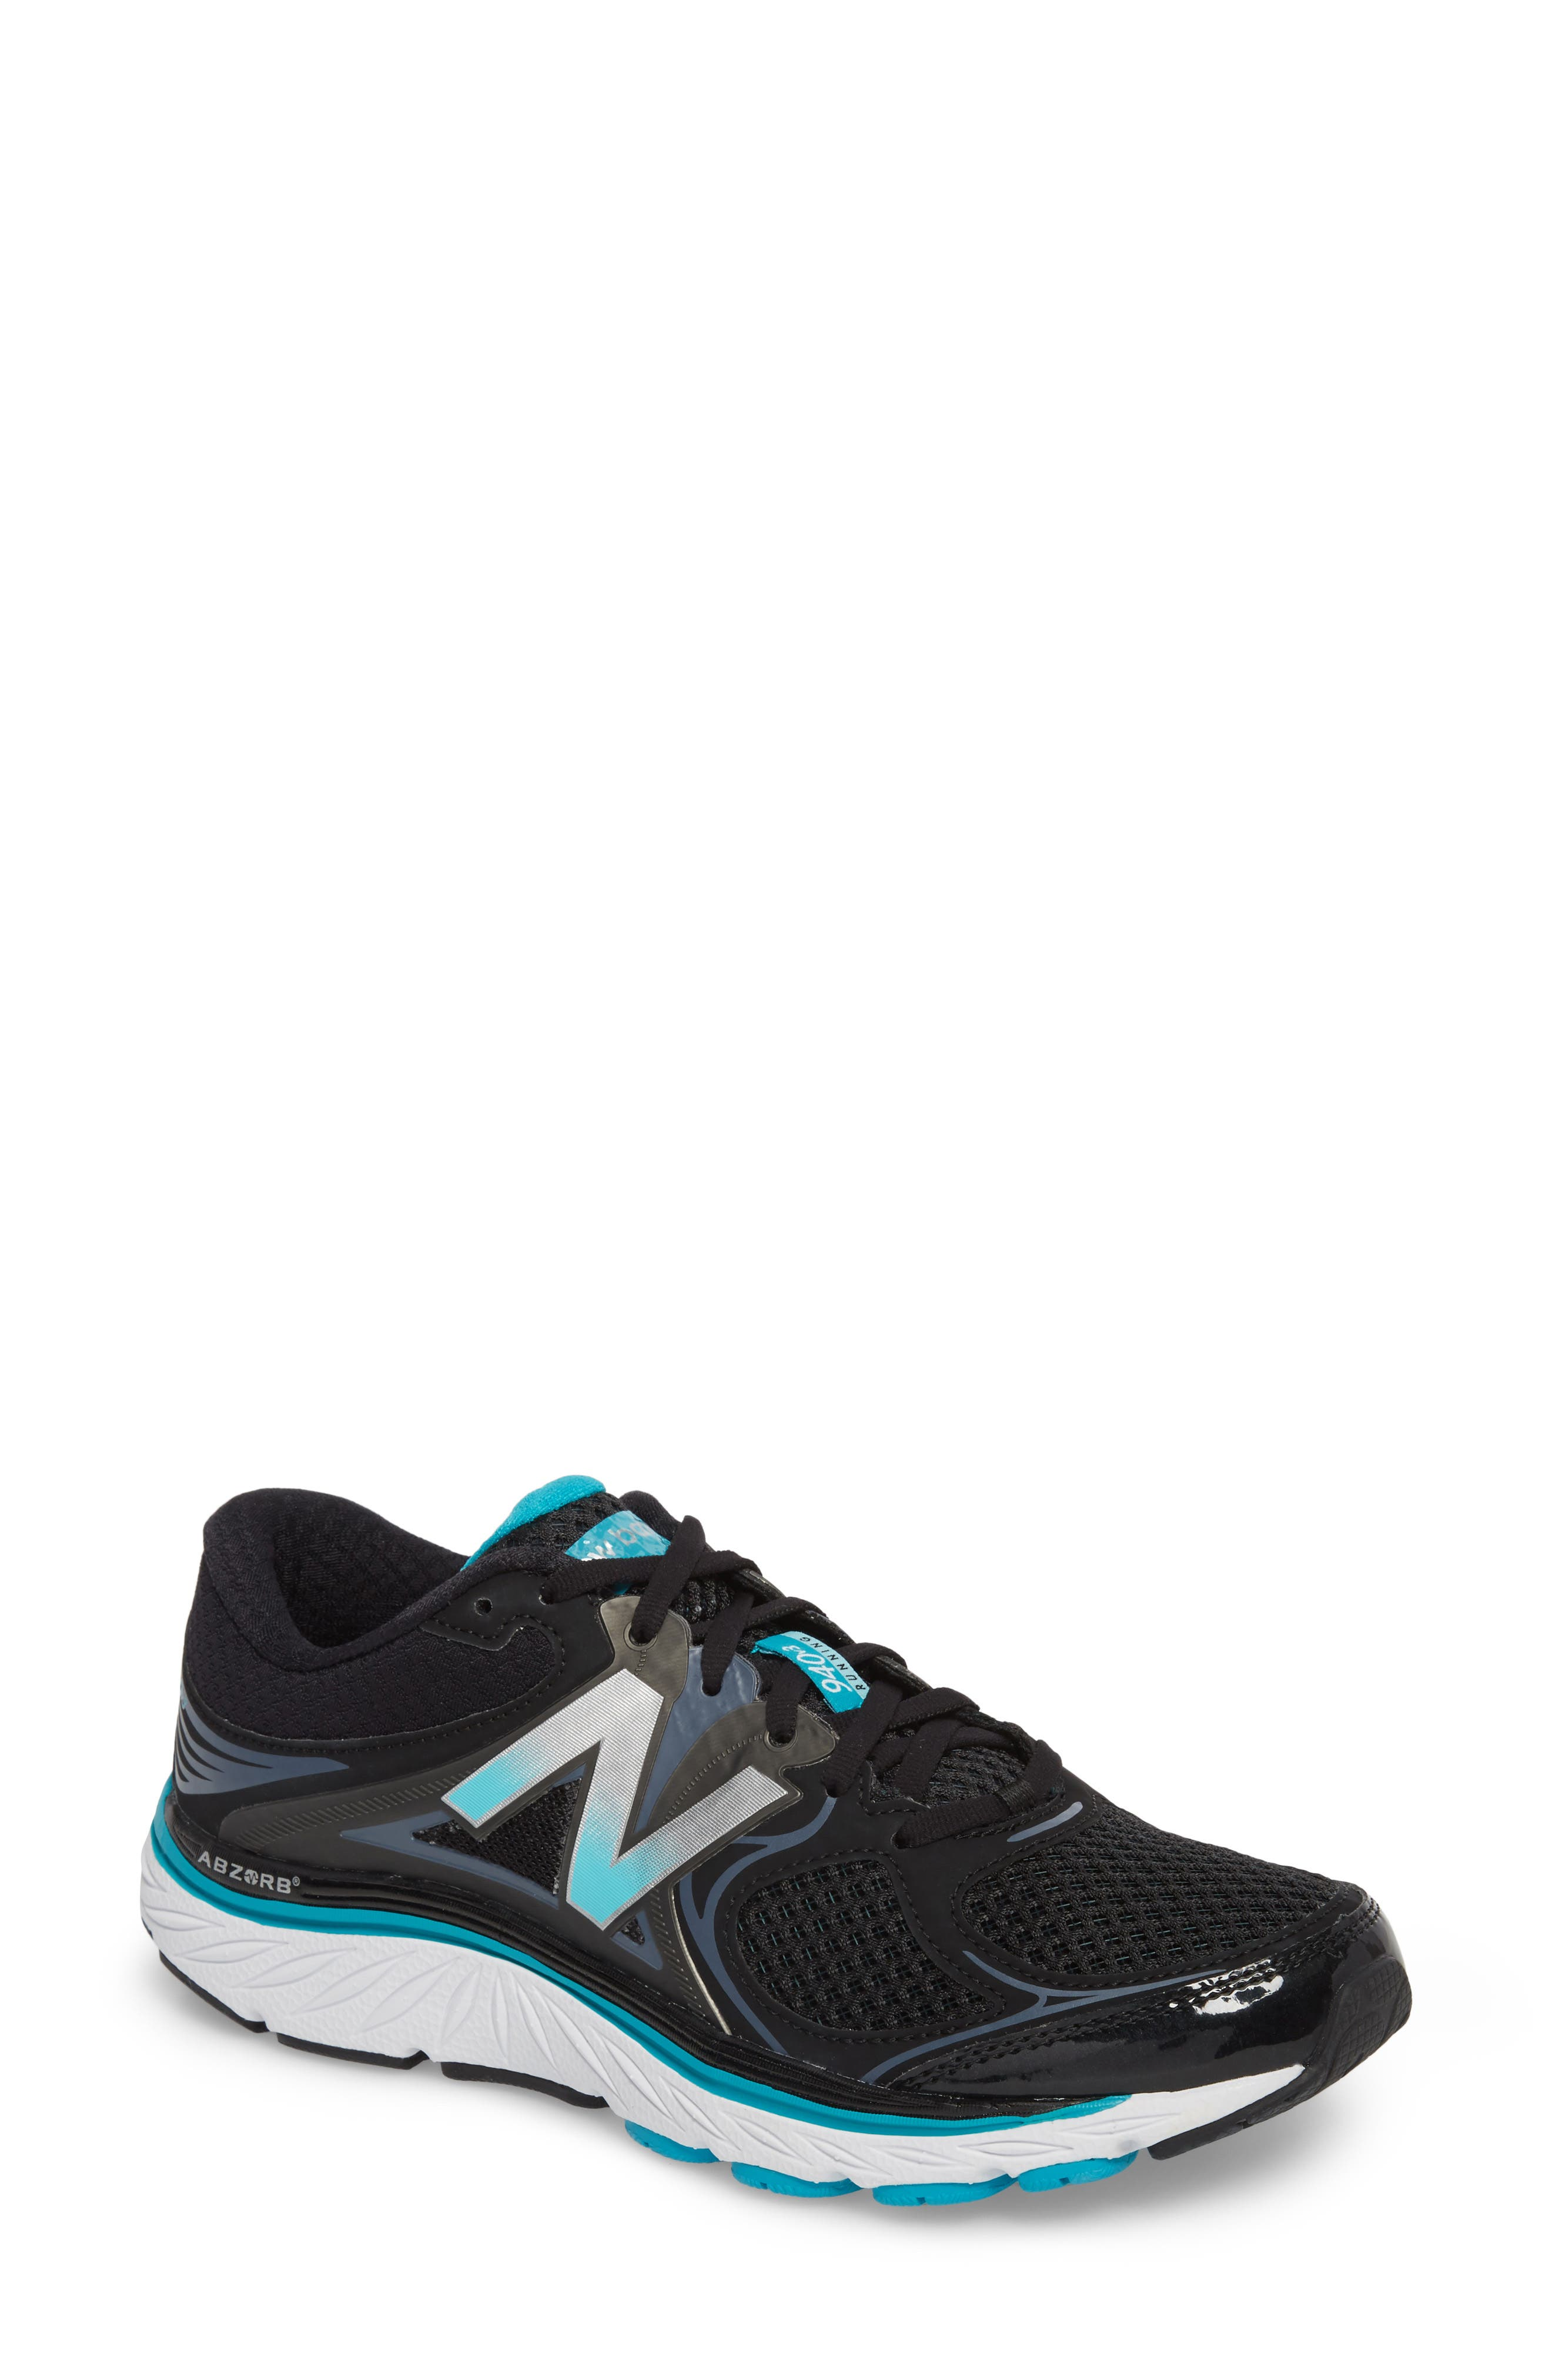 Main Image - New Balance 940v3 Running Shoe (Women)